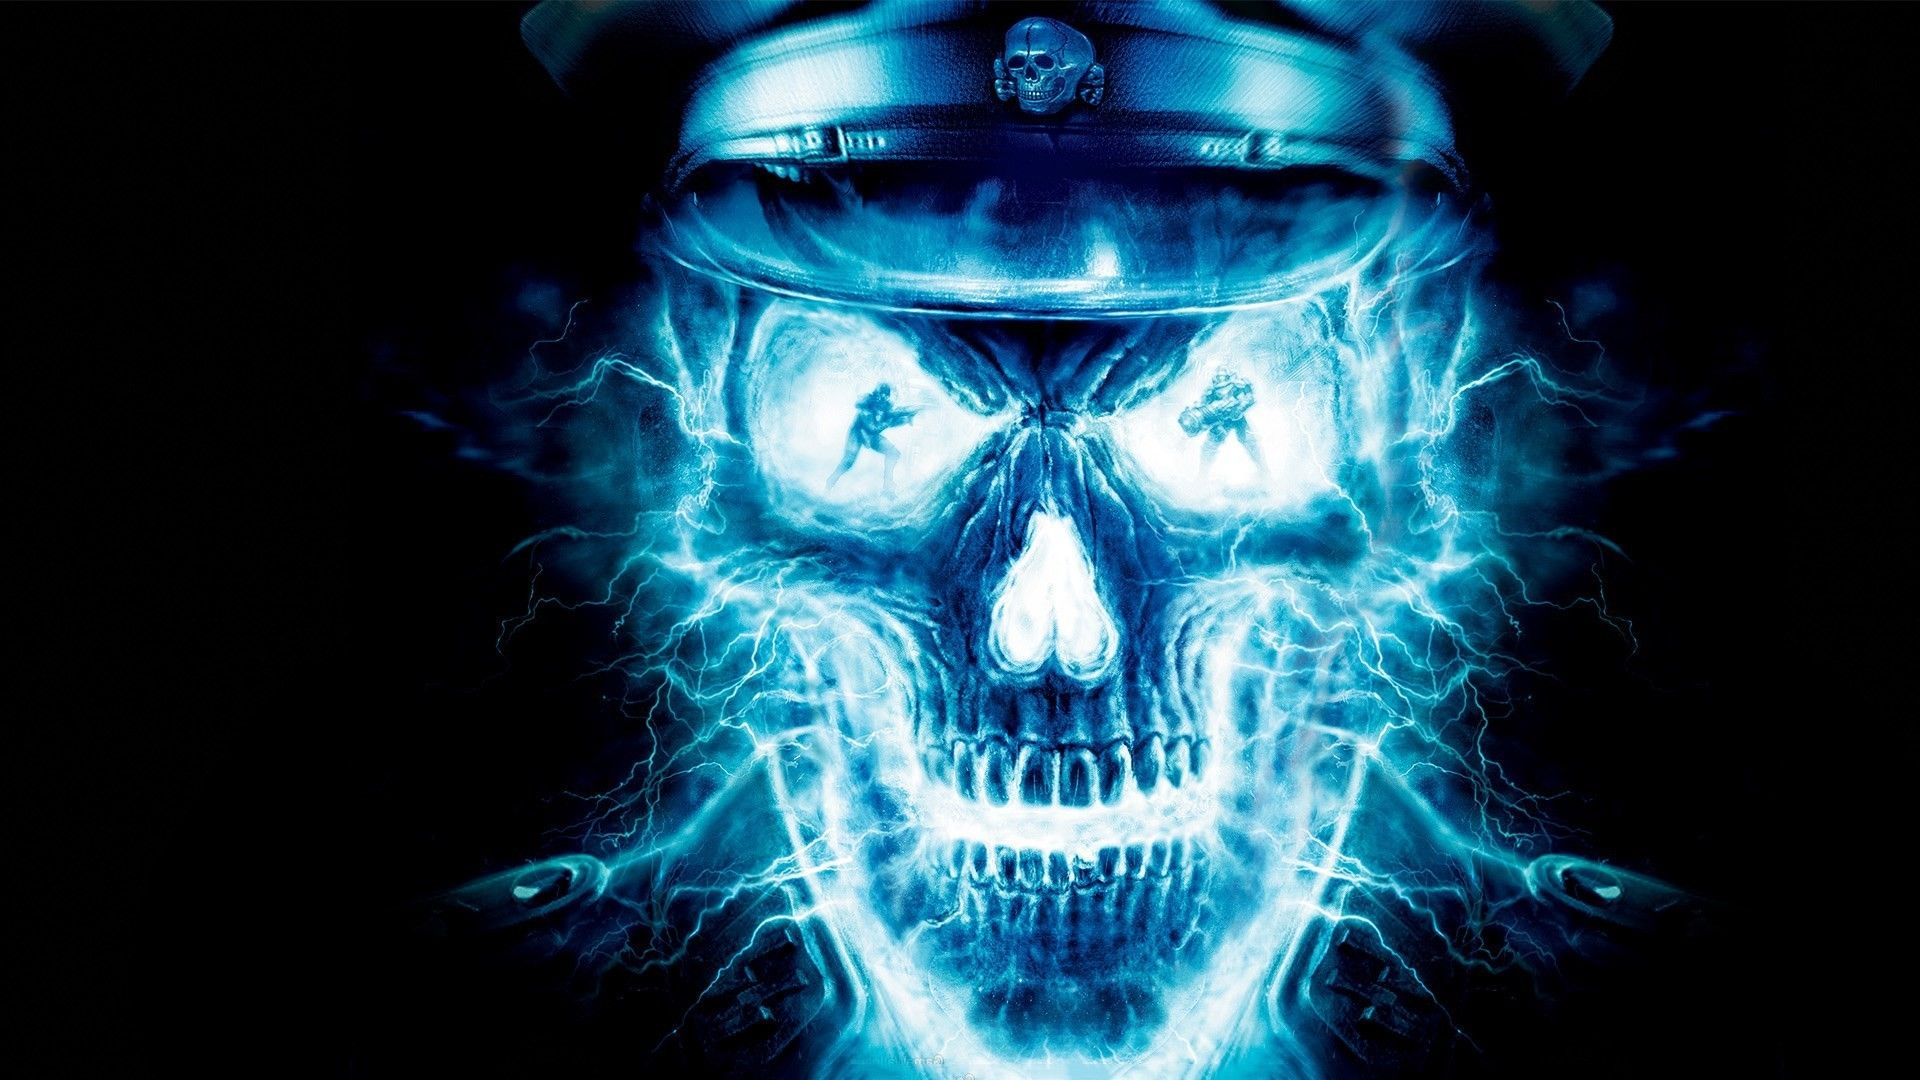 Blue Skull Wallpapers Top Free Blue Skull Backgrounds Wallpaperaccess